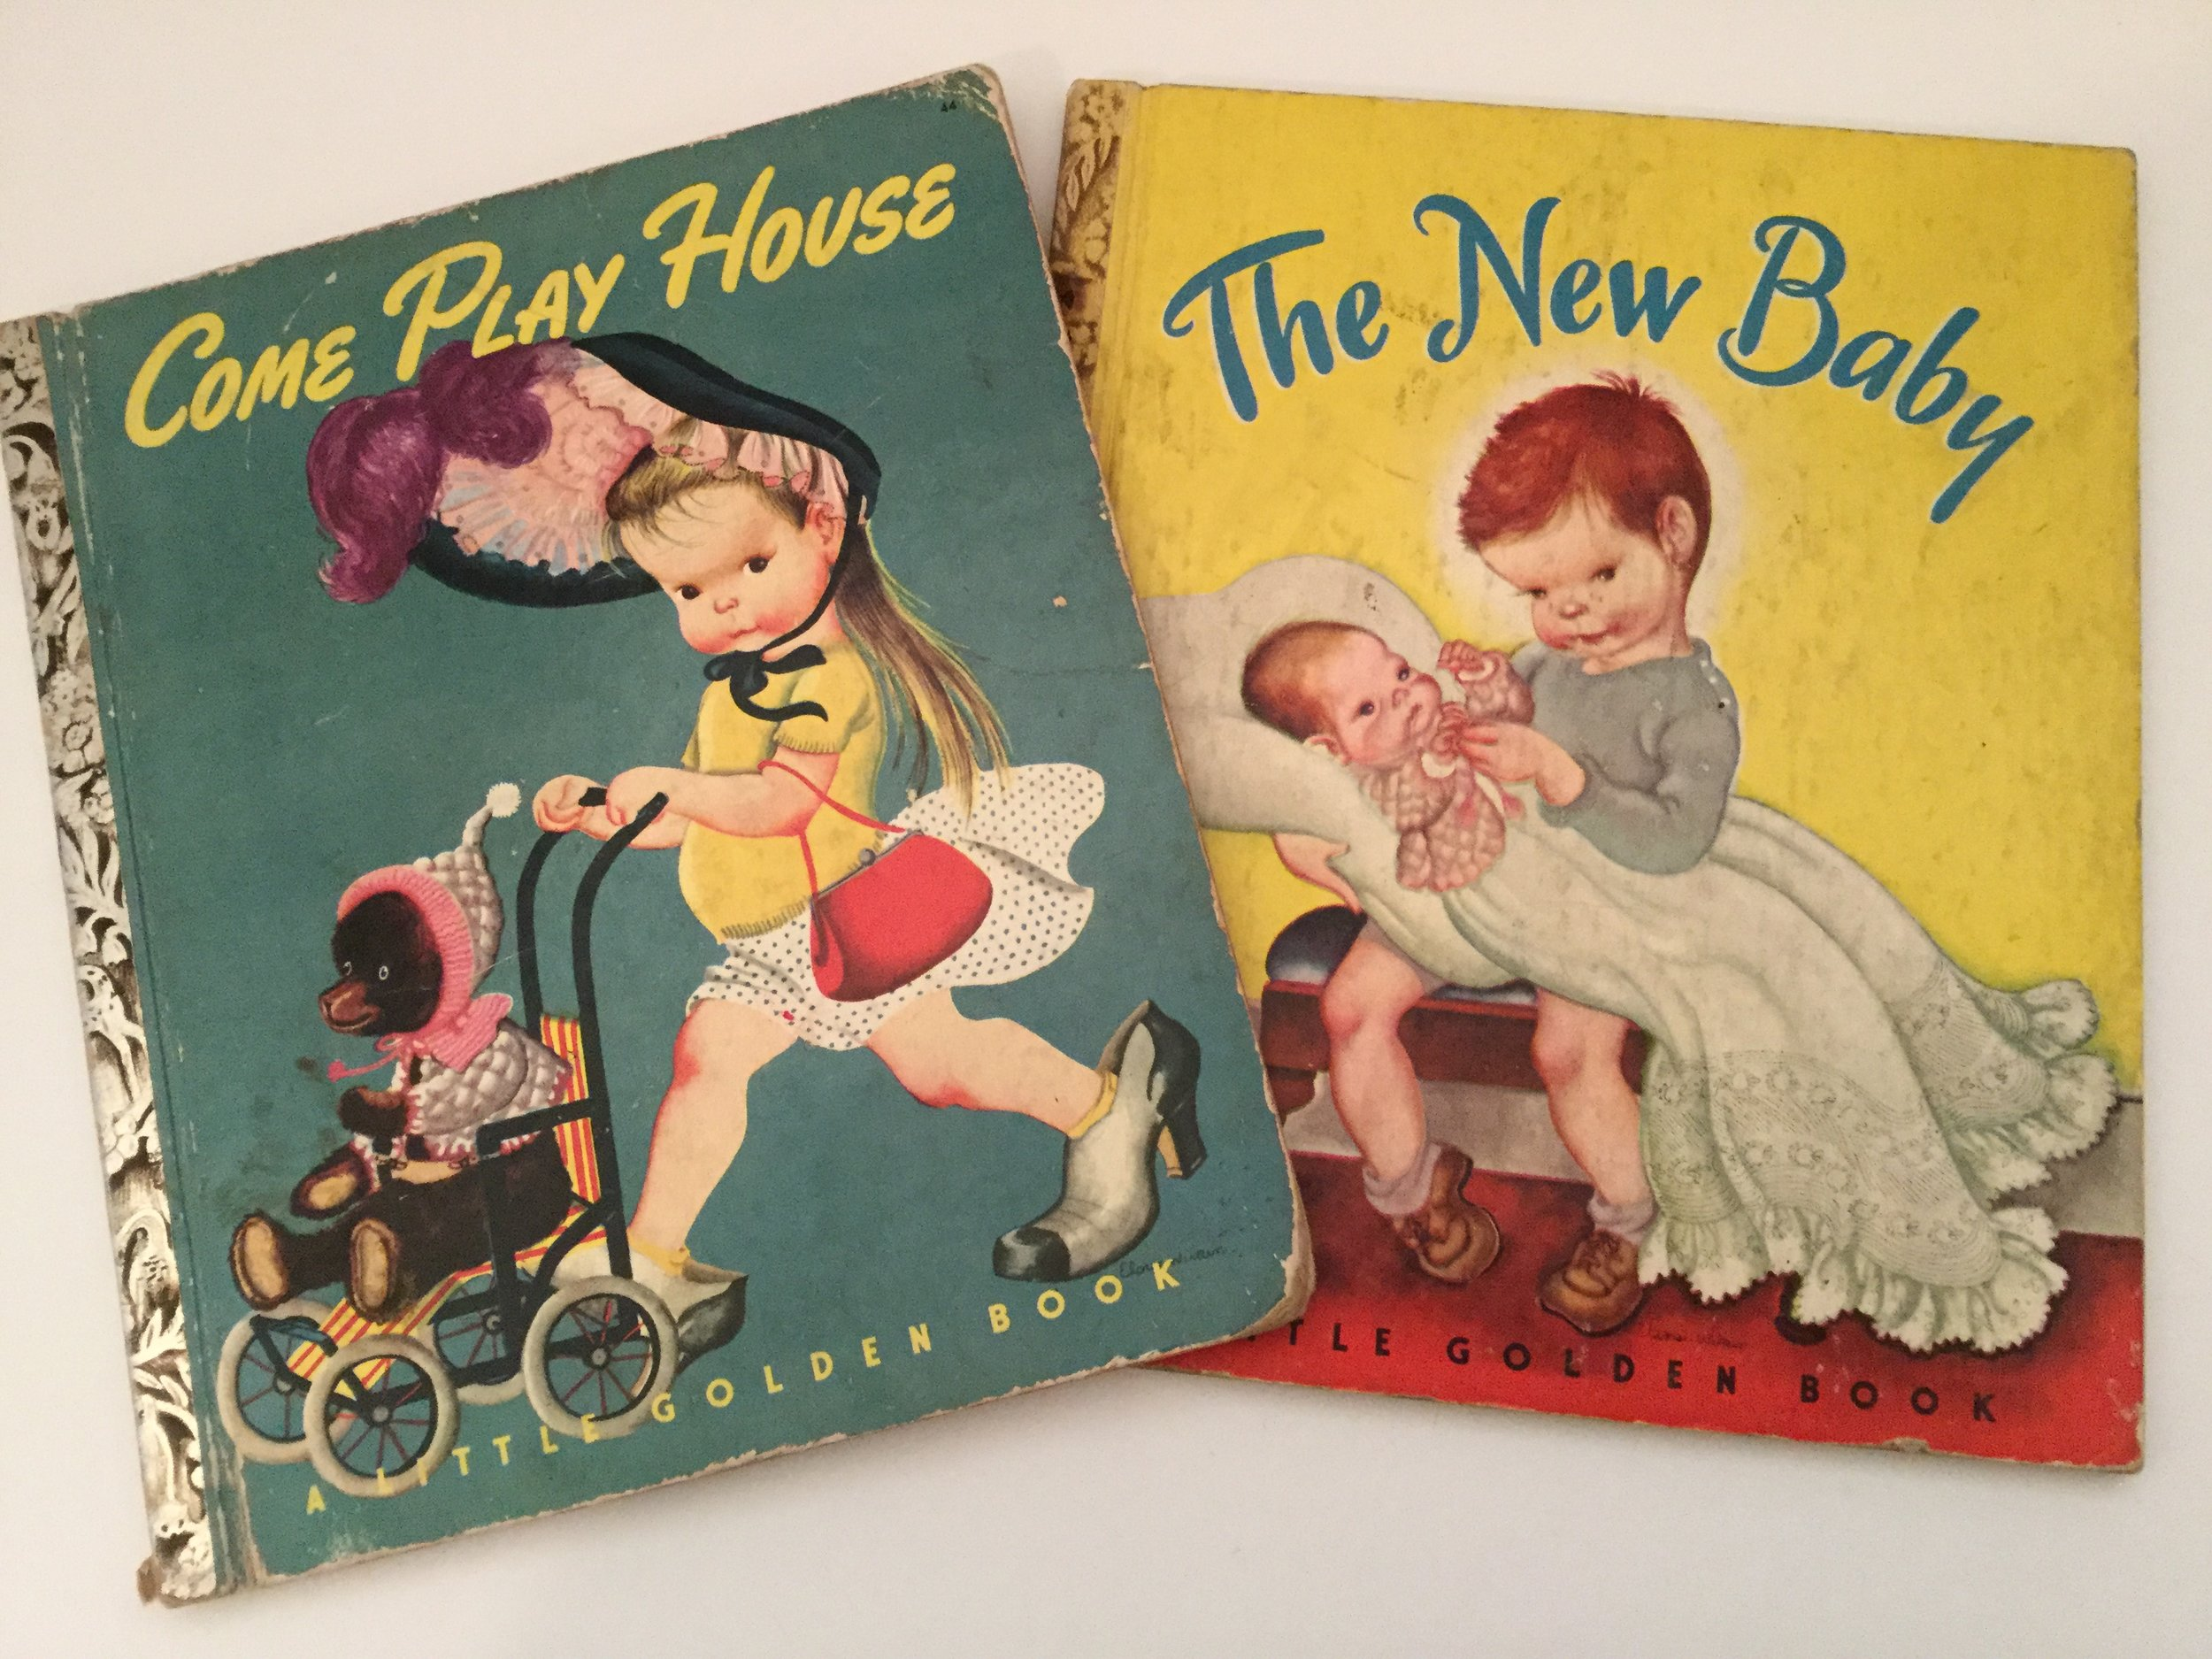 These are two Little Golden Books that are vivid in my memory.  While trying to find a copy of The New Baby I began a whole new collection of vintage Golden Books that will soon be a topic on this blog.